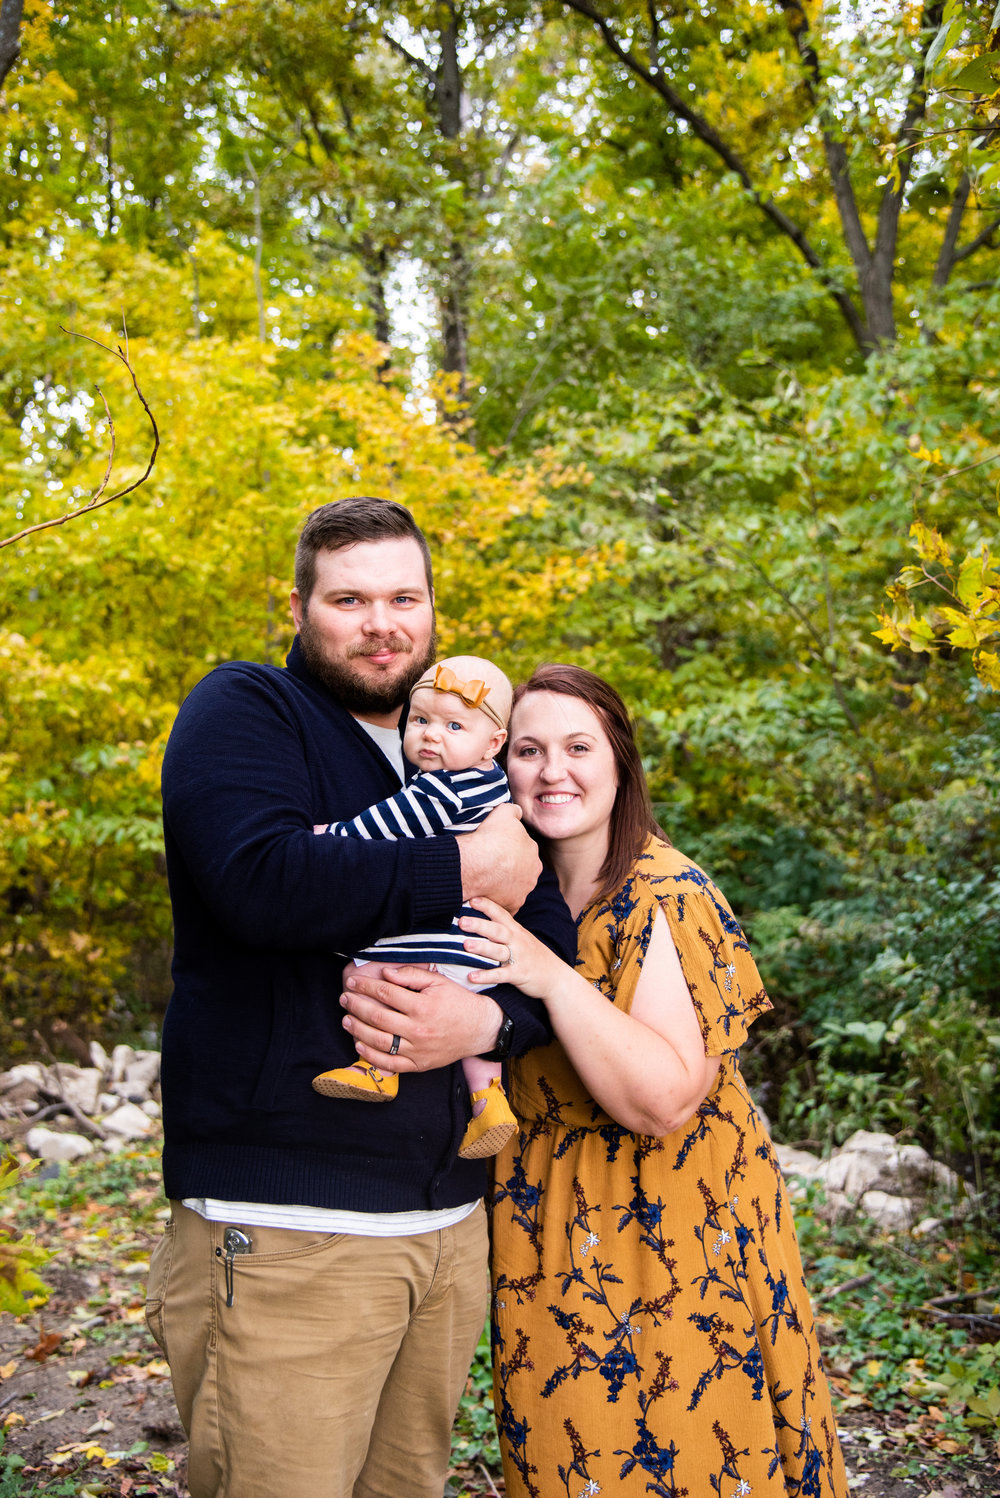 Kyla Jo Photography Muncie Indiana // Midwest Photographer // Family Photography